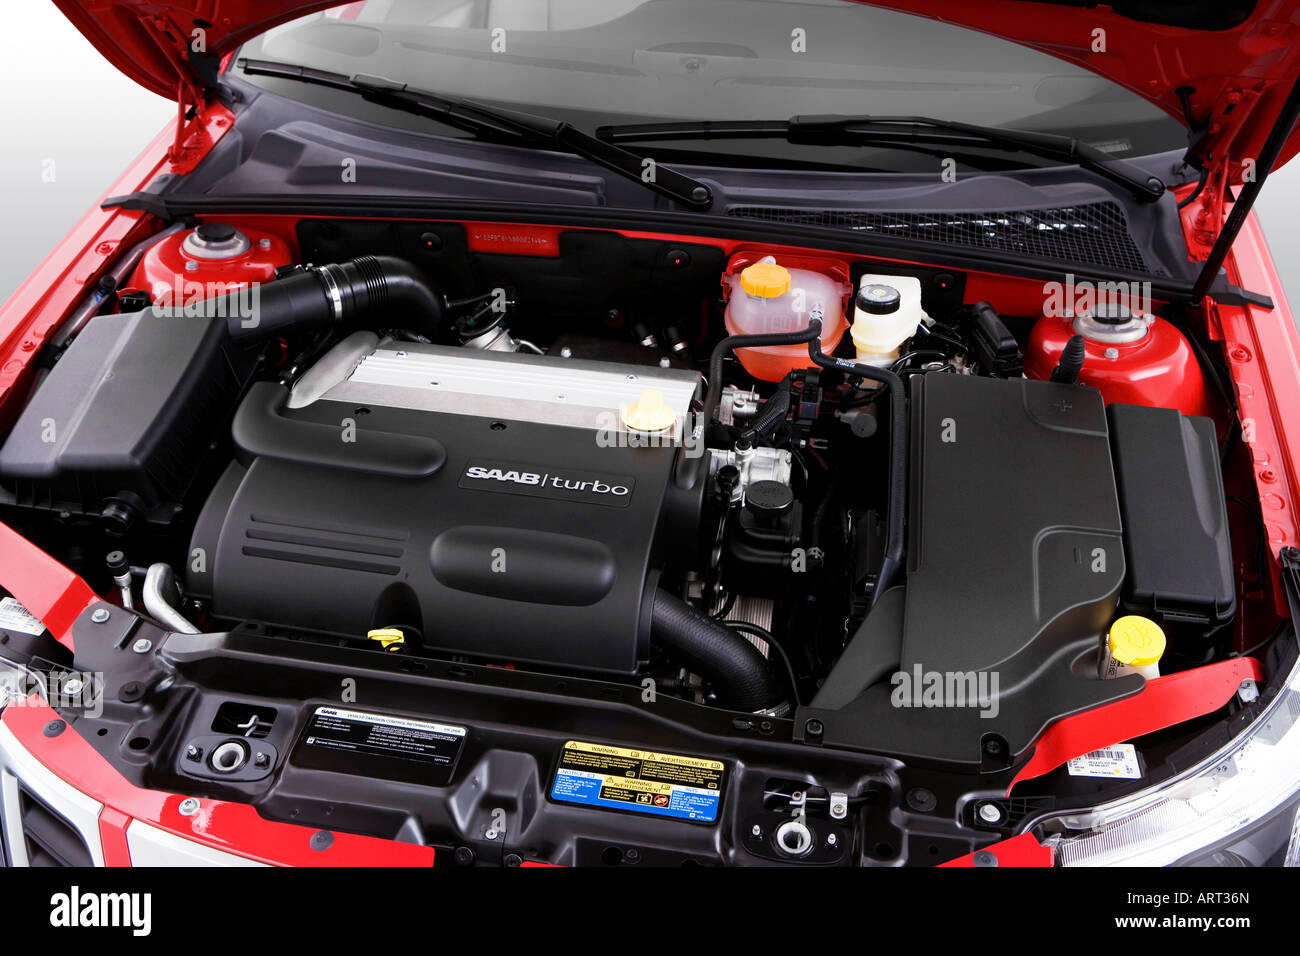 2008 Saab 9-3 2 0T in Red - Engine Stock Photo: 16120124 - Alamy